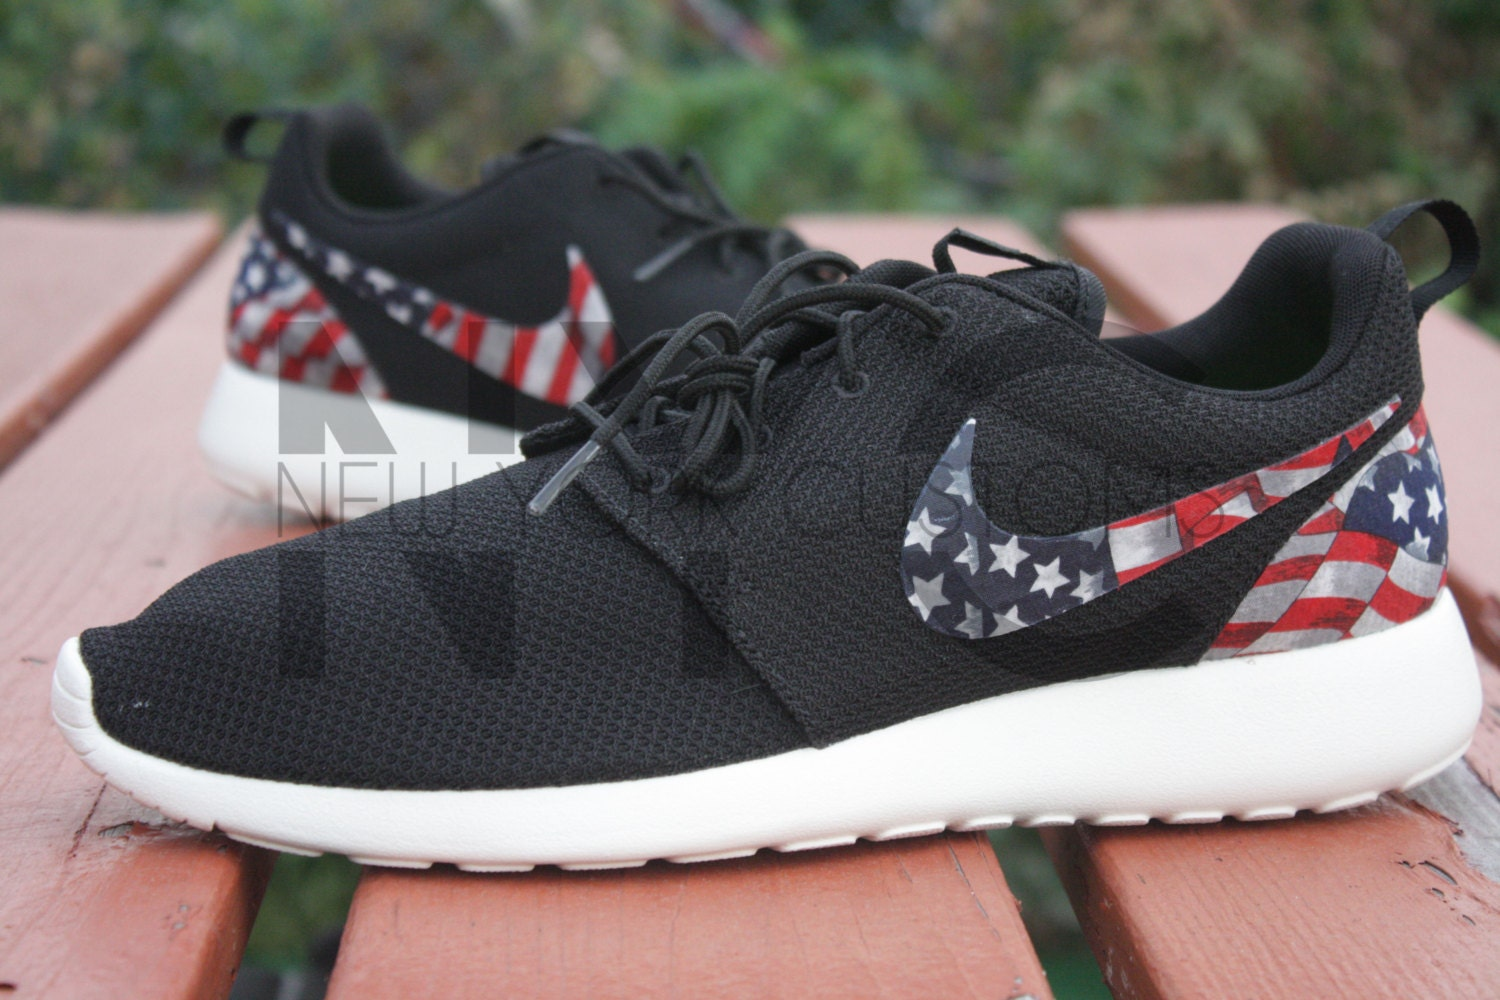 nike roshe run black anthracite american flag pride print. Black Bedroom Furniture Sets. Home Design Ideas